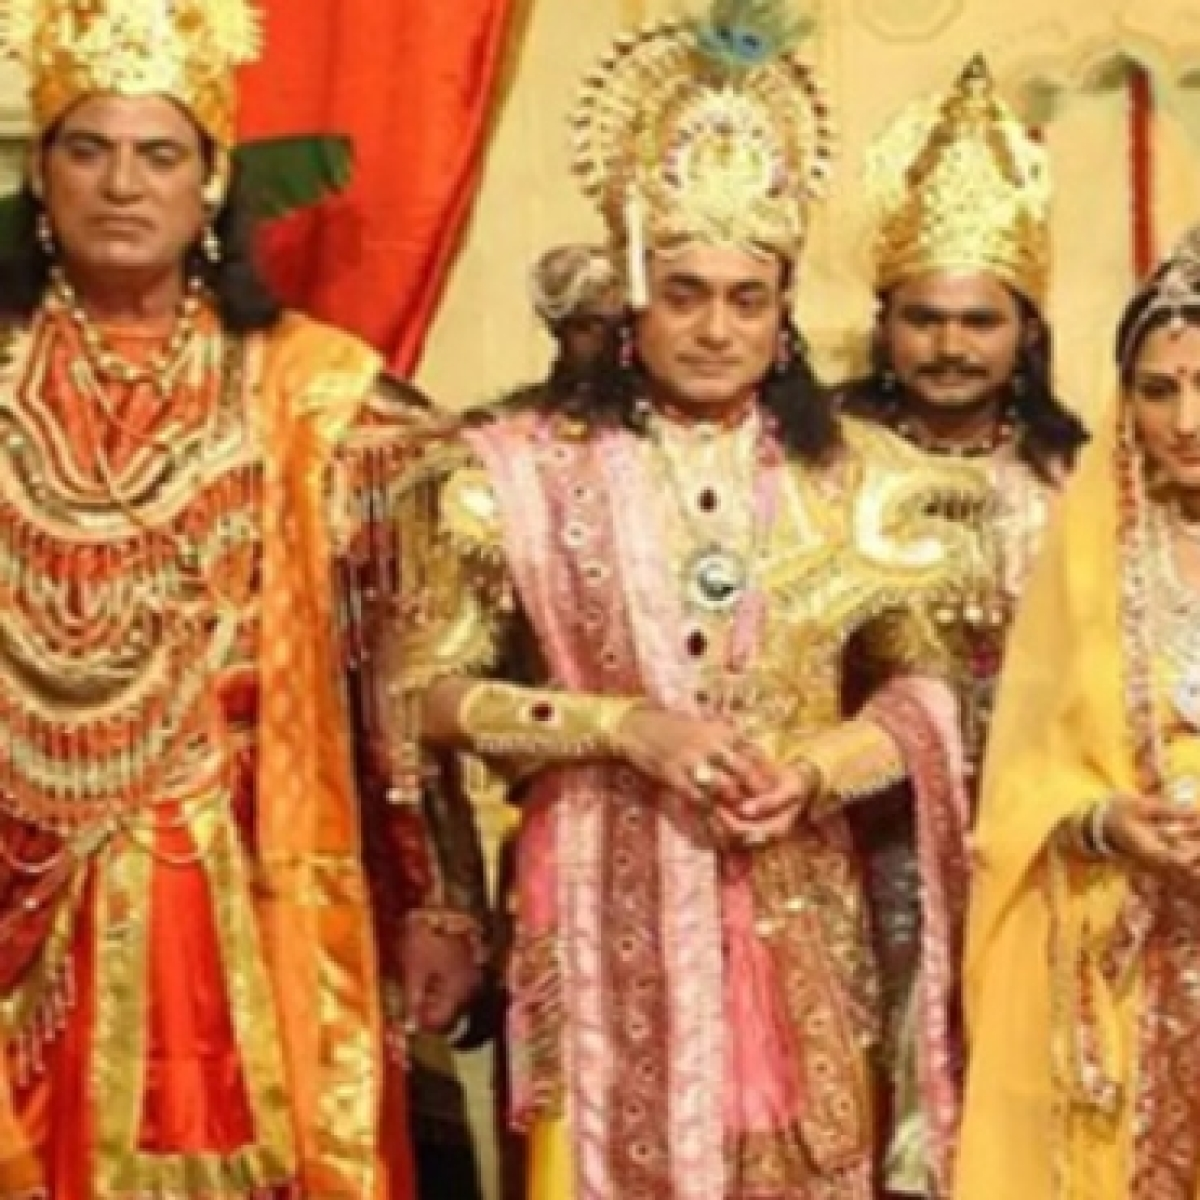 Mahabharat: Here are the DTH channels you can binge watch the epic for 3 hours every day